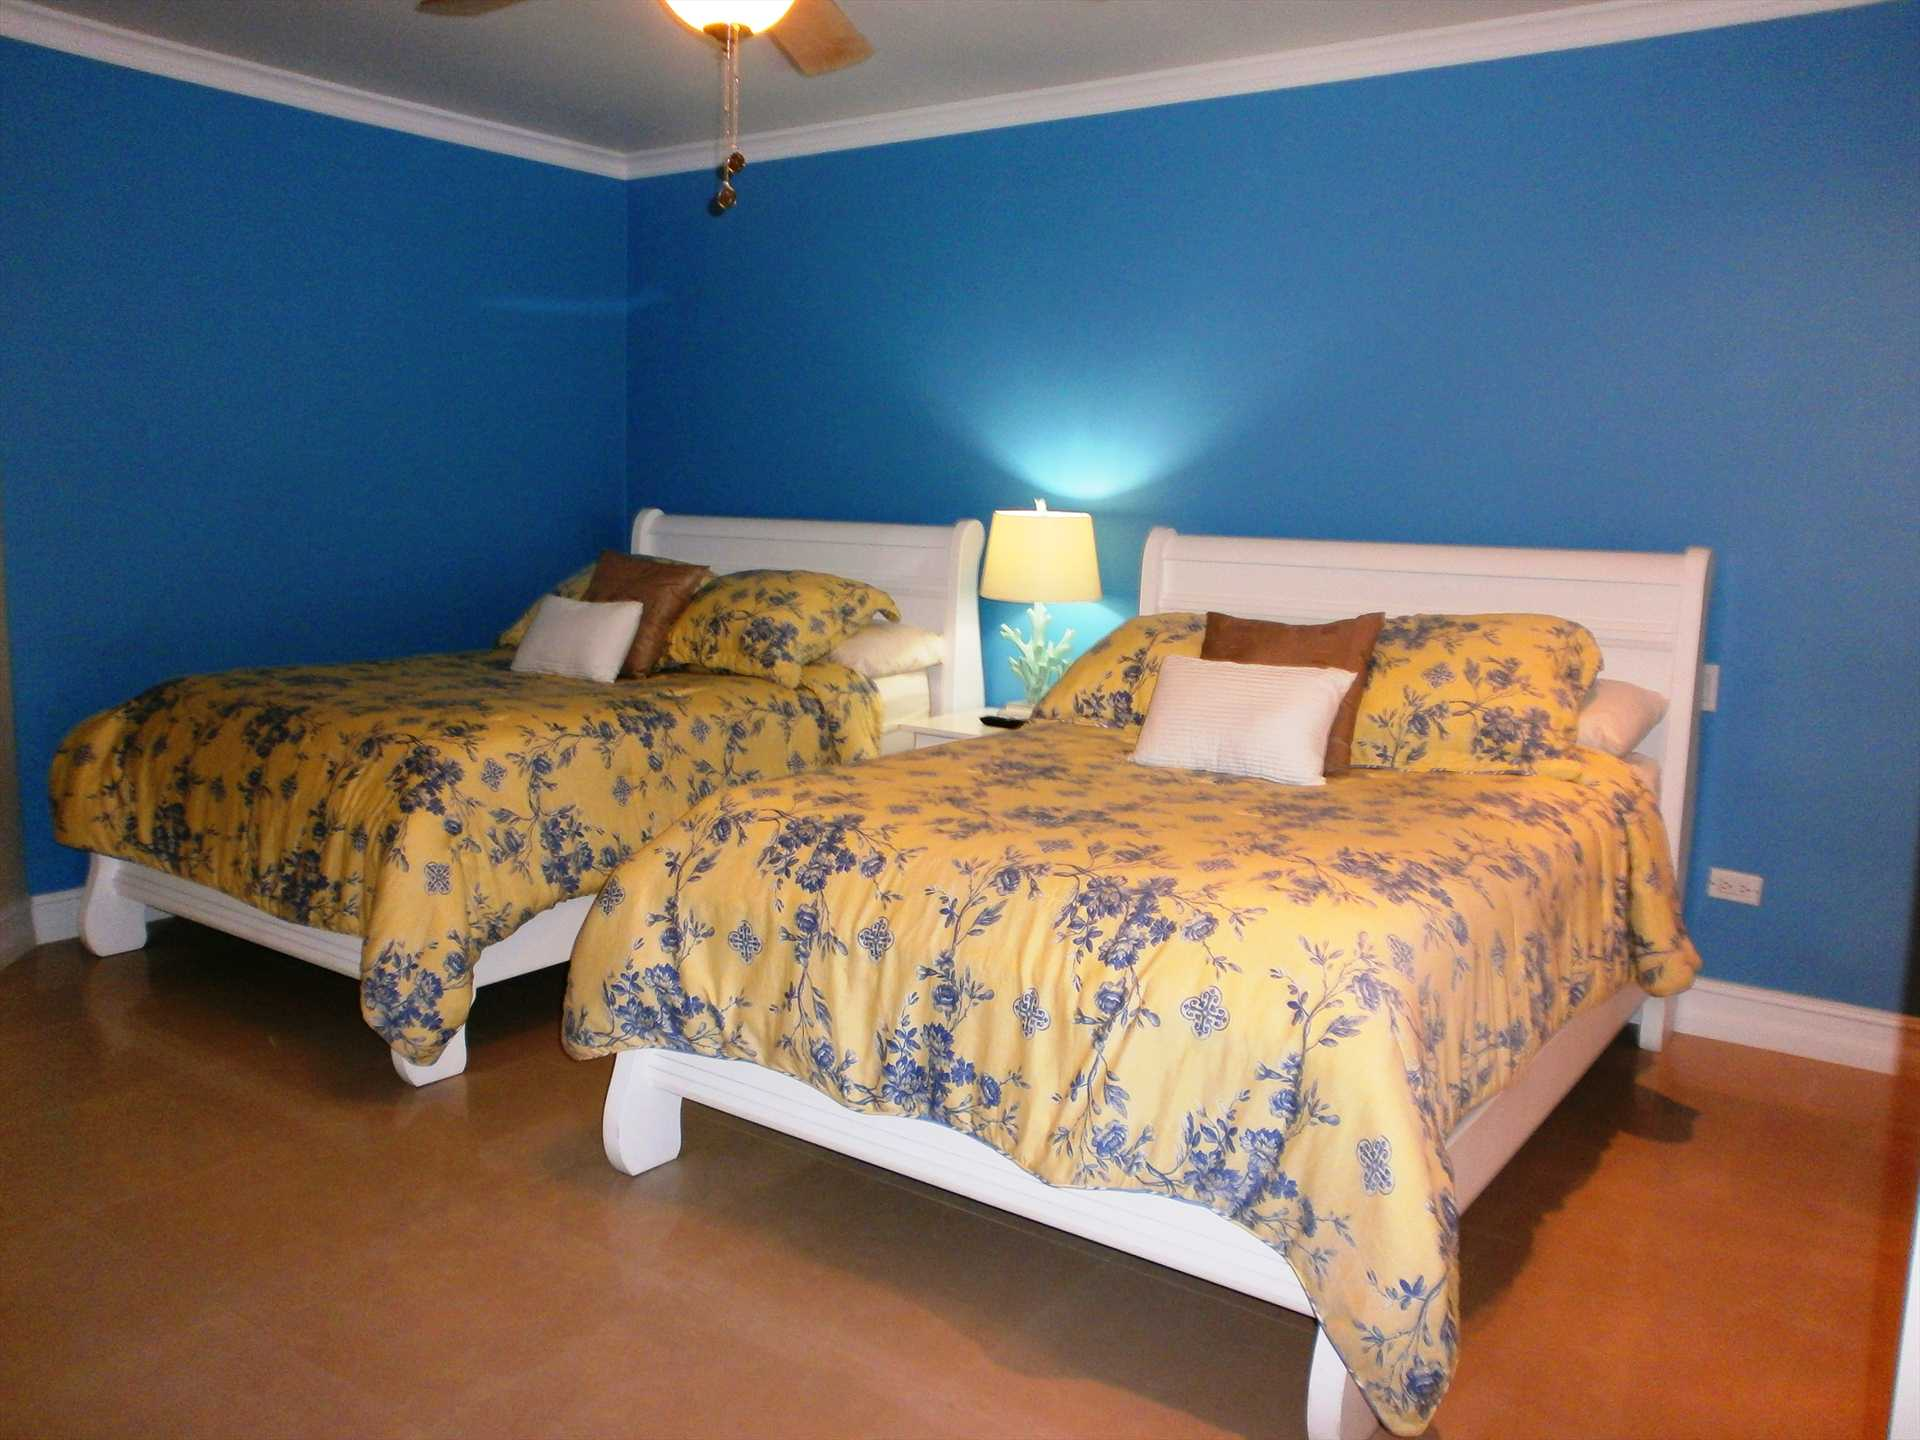 Spacious room with two comfortable double (full-size) beds